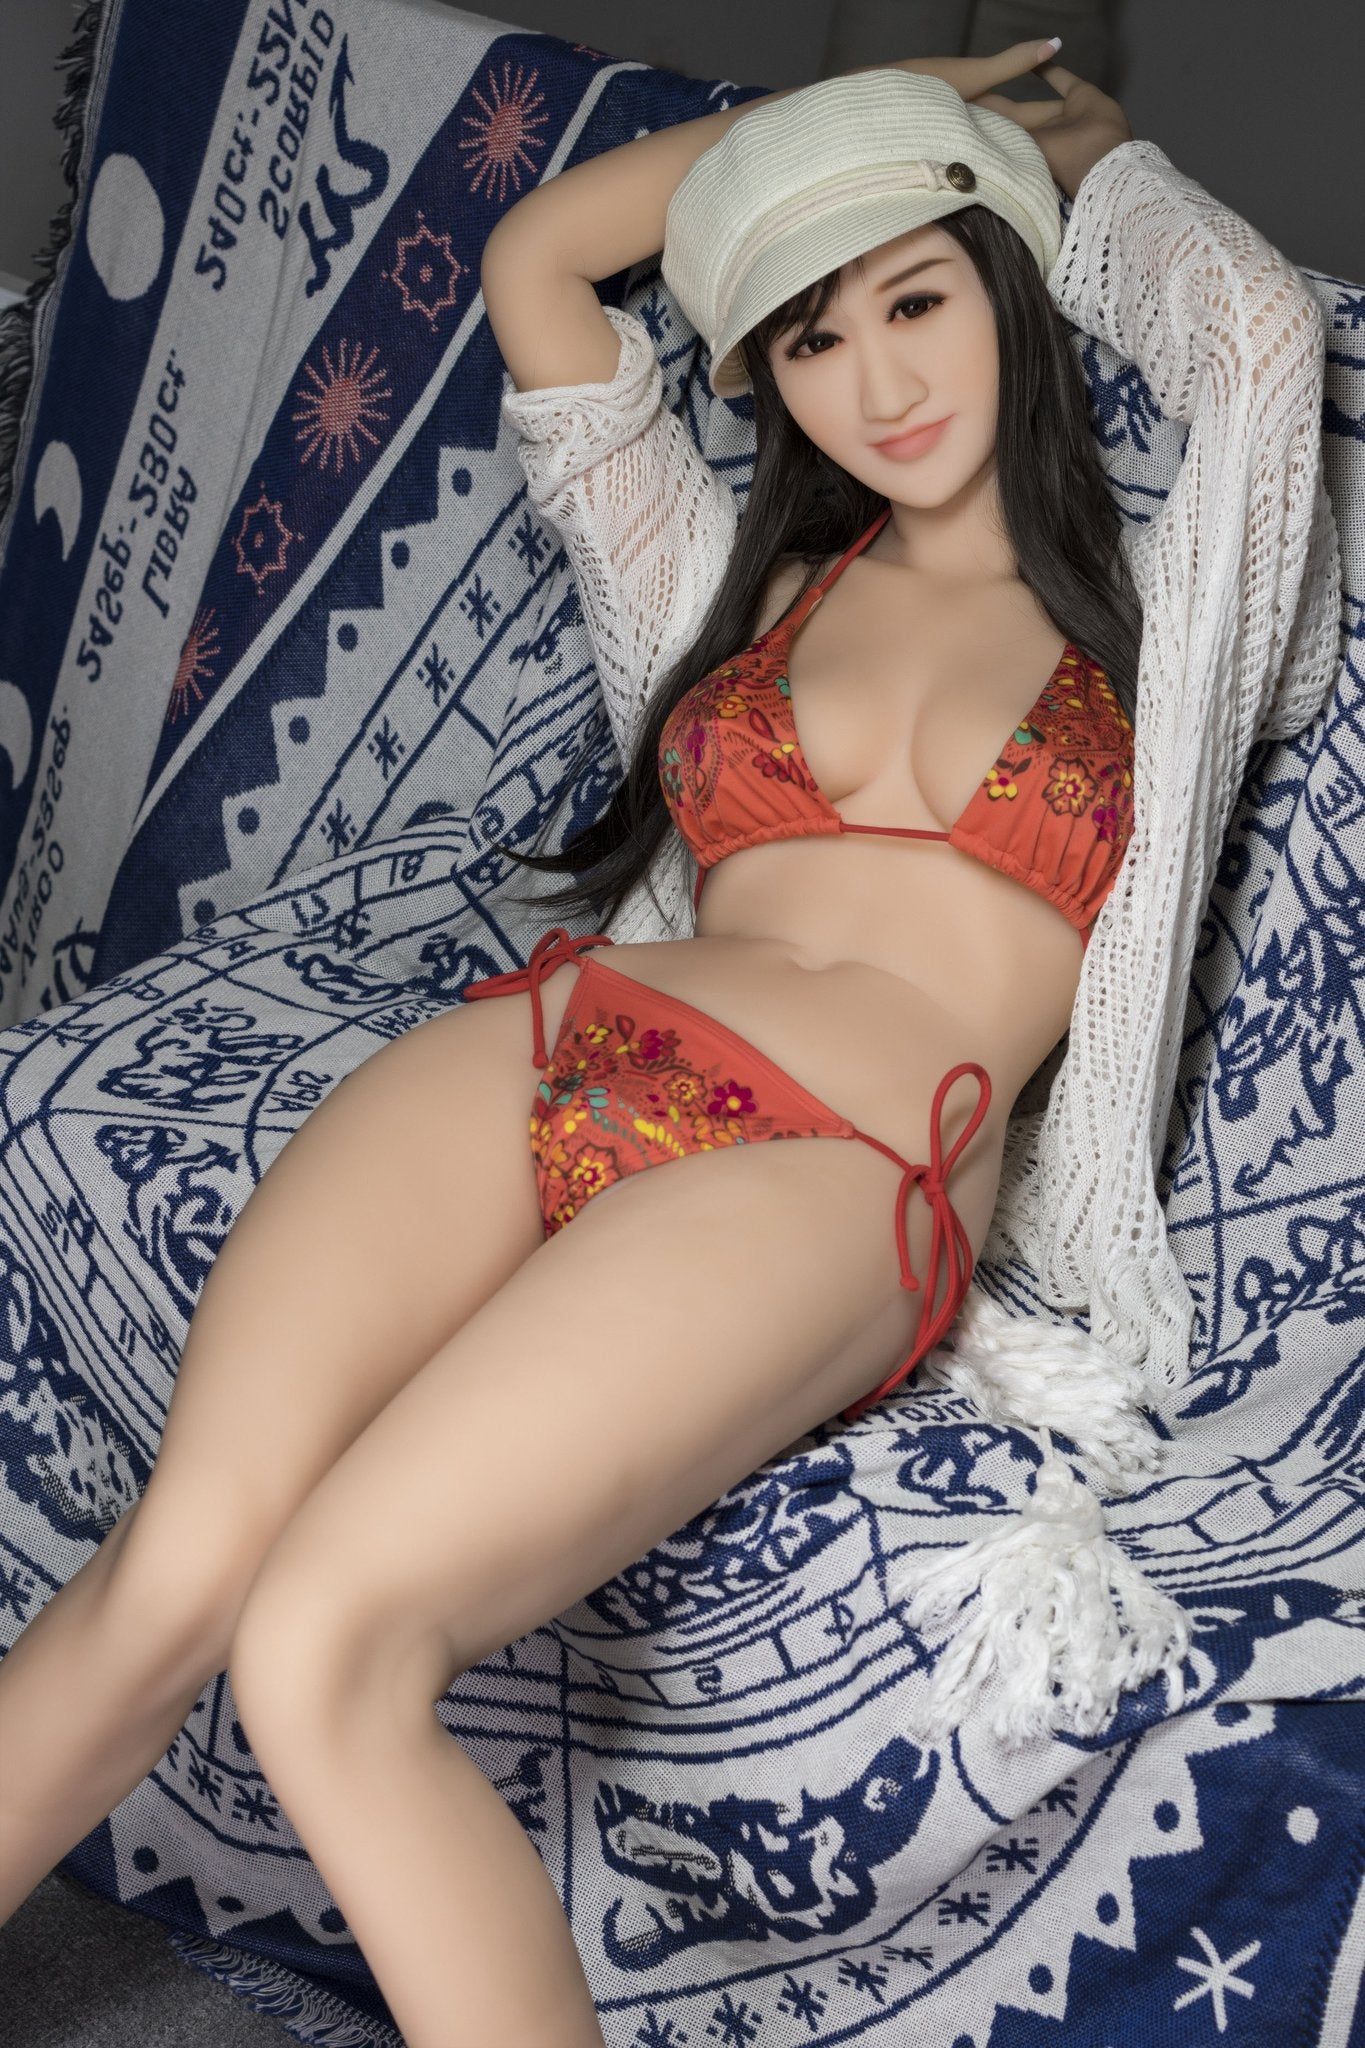 julissa 163cm brown hair japanese medium tits skinny tpe wm asian sex doll(4)